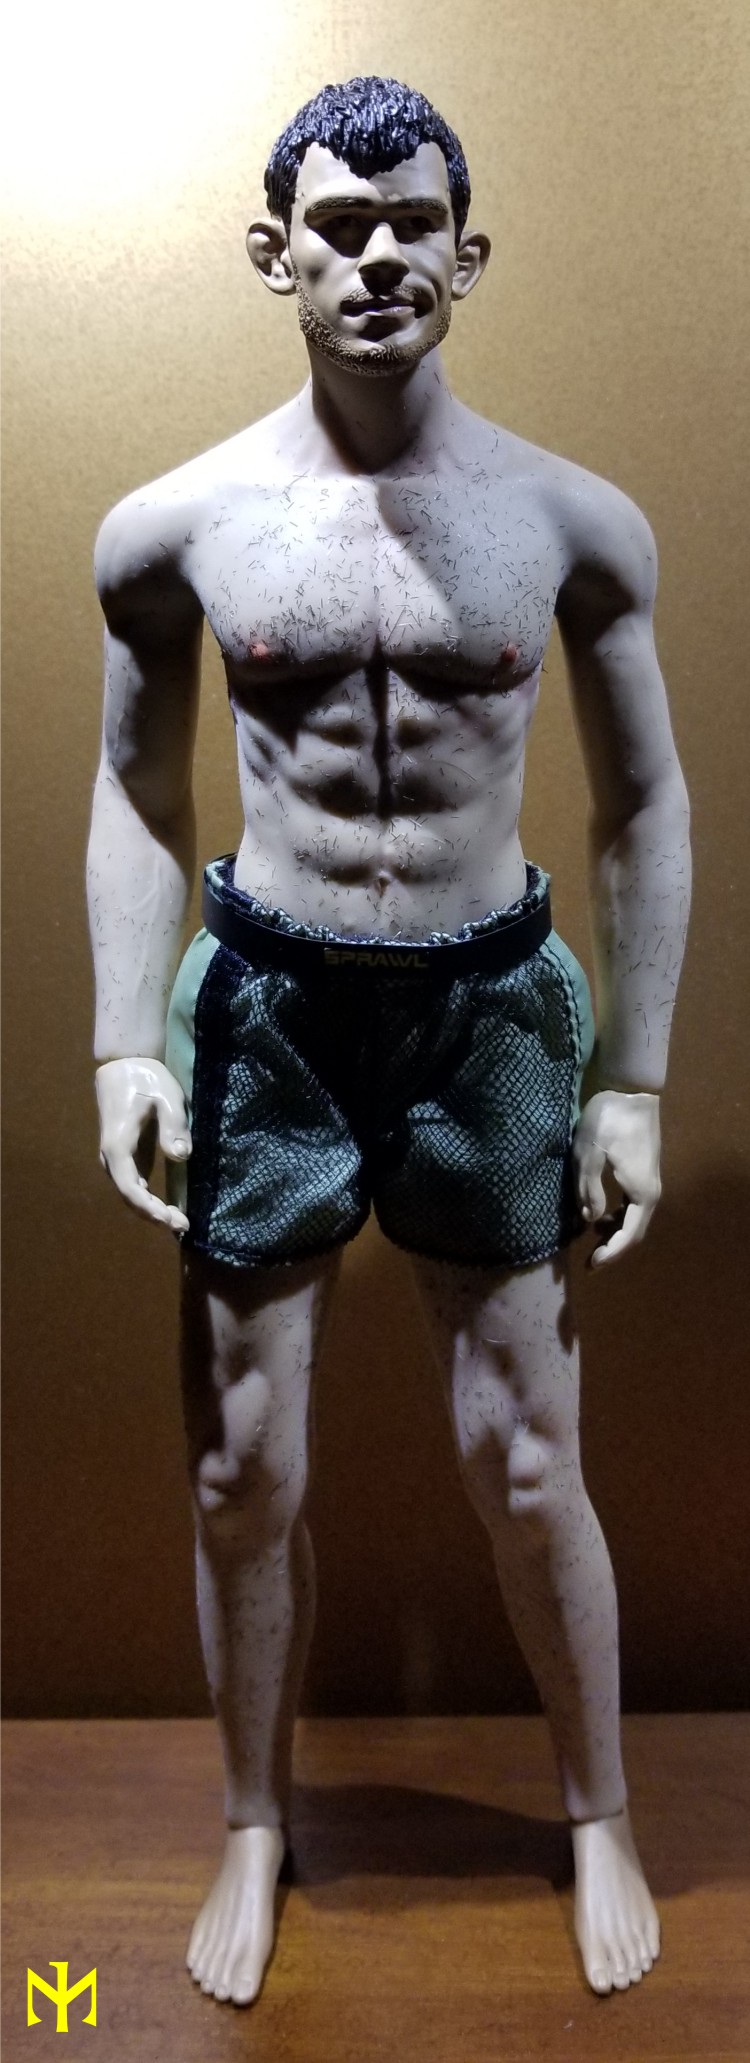 ufc - Kitbash UFC Champion Forrest Griffin Forgri12